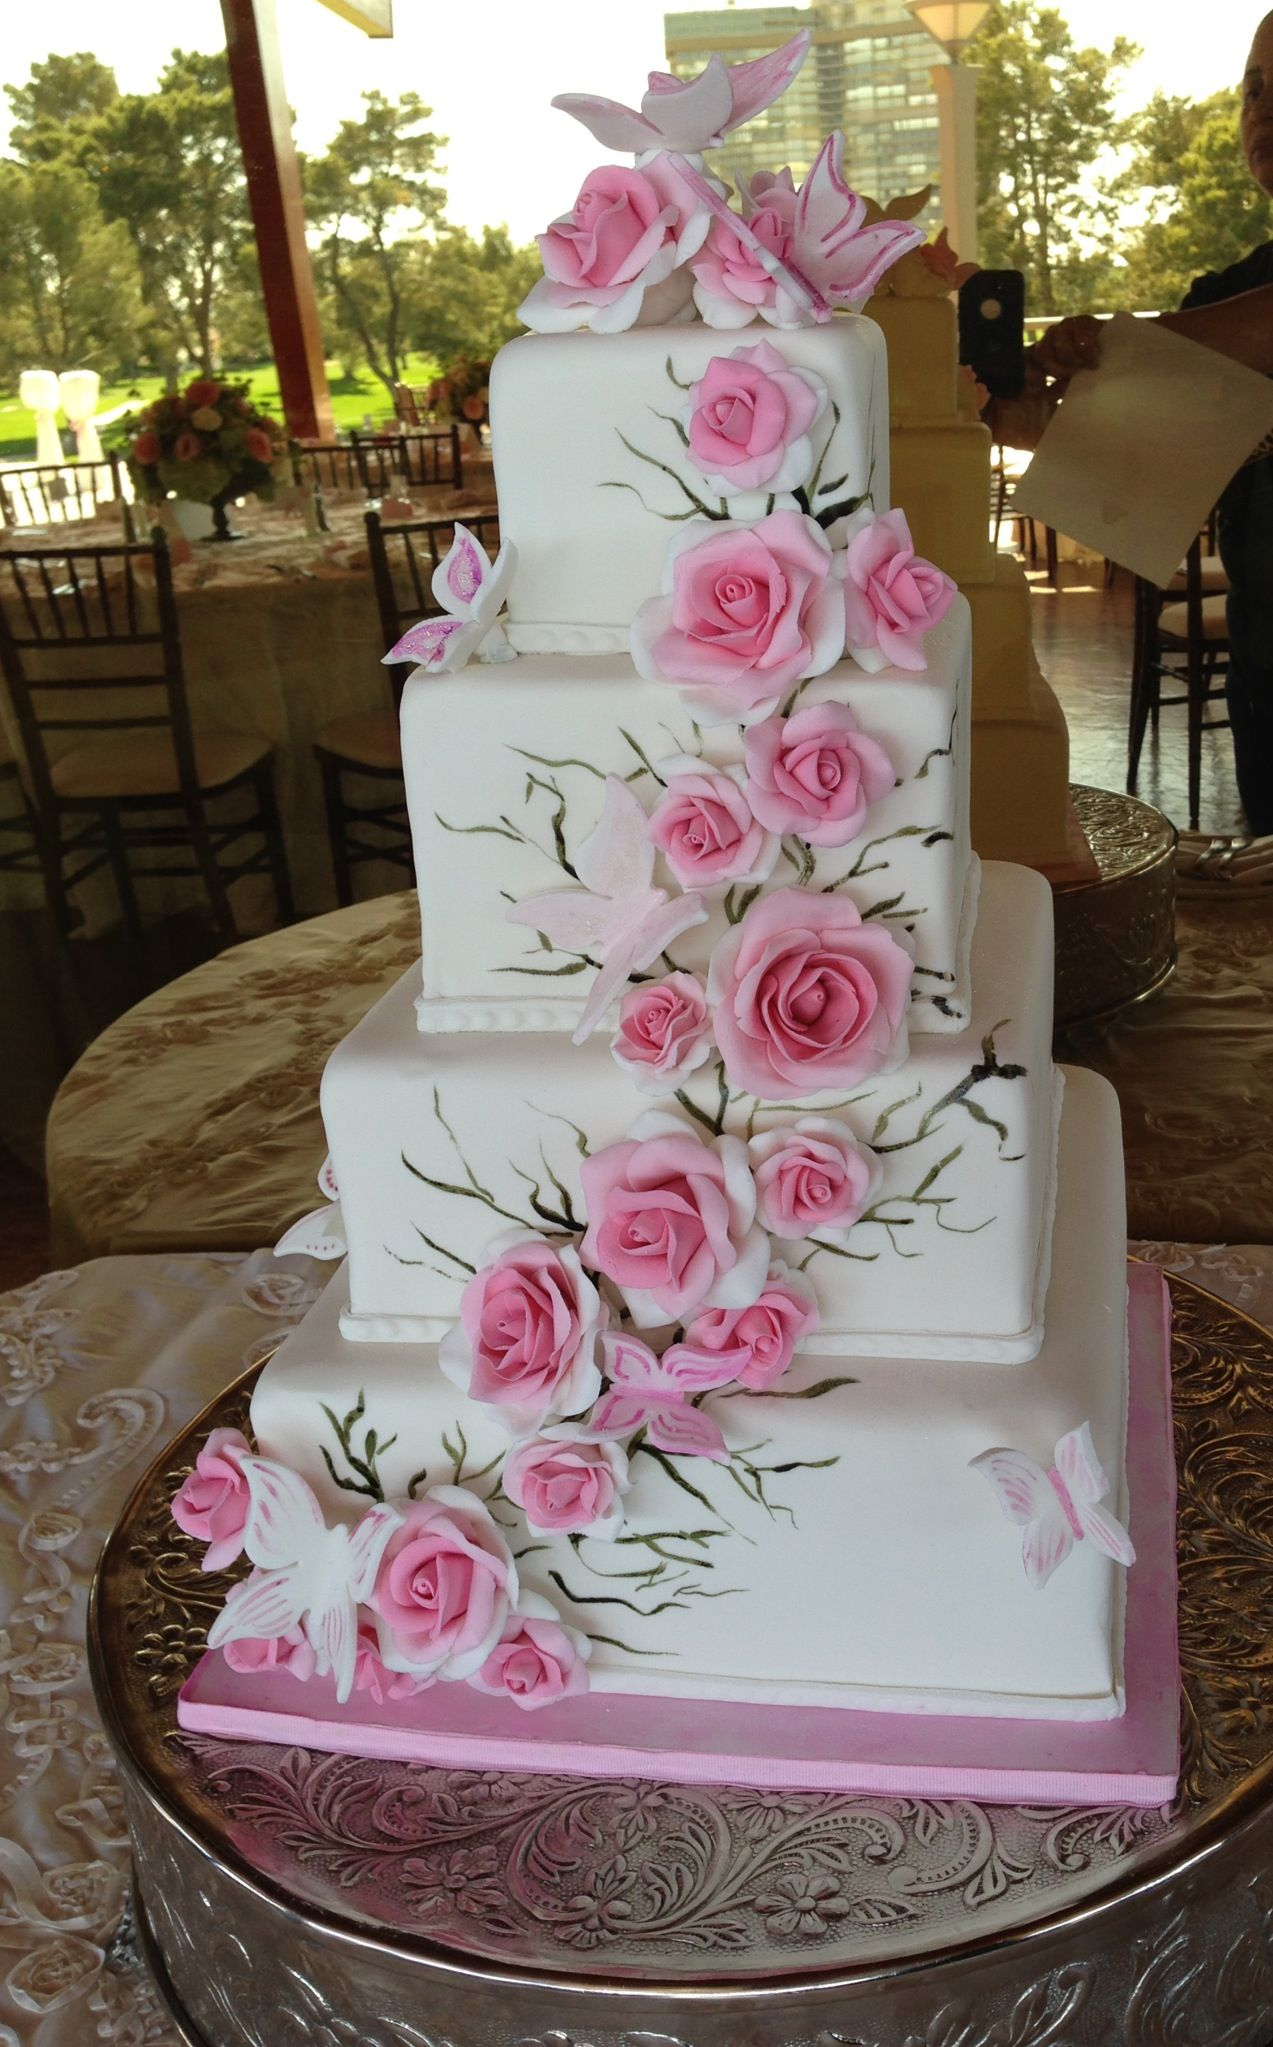 Romantic roses and Butterflies. Pretty in pink! A beautiful wedding cake.  http://www.sweetlucysconfections.com/Sweet_Lucy_Confections/HOME.html